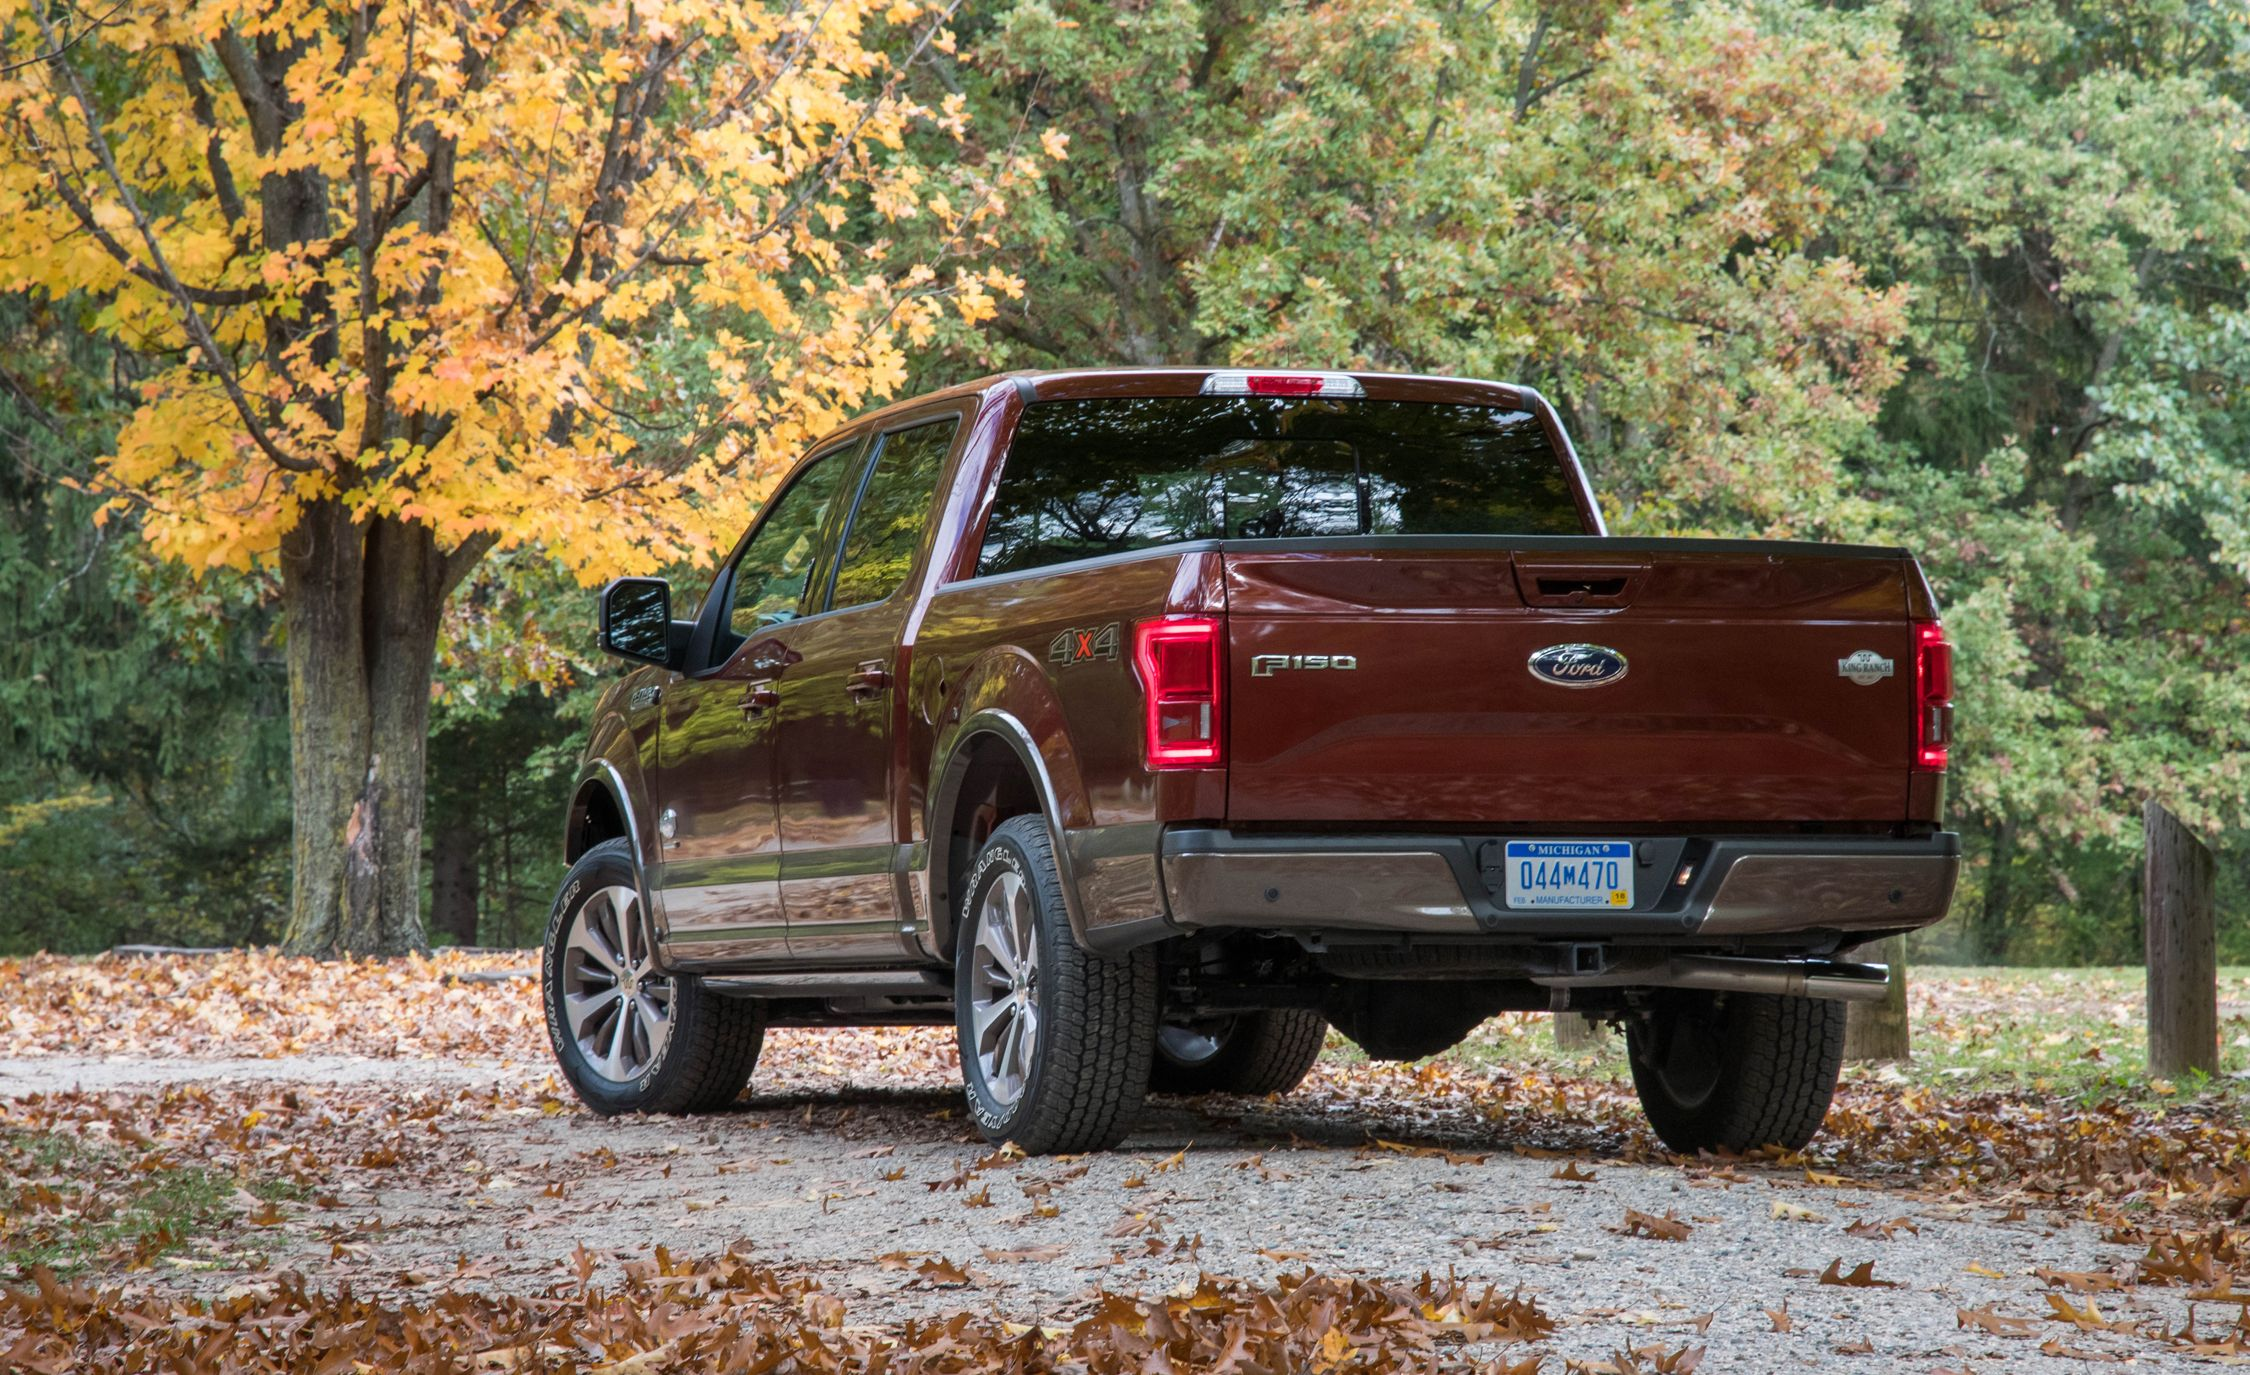 & 2017 Ford F-150 | In-Depth Model Review | Car and Driver markmcfarlin.com